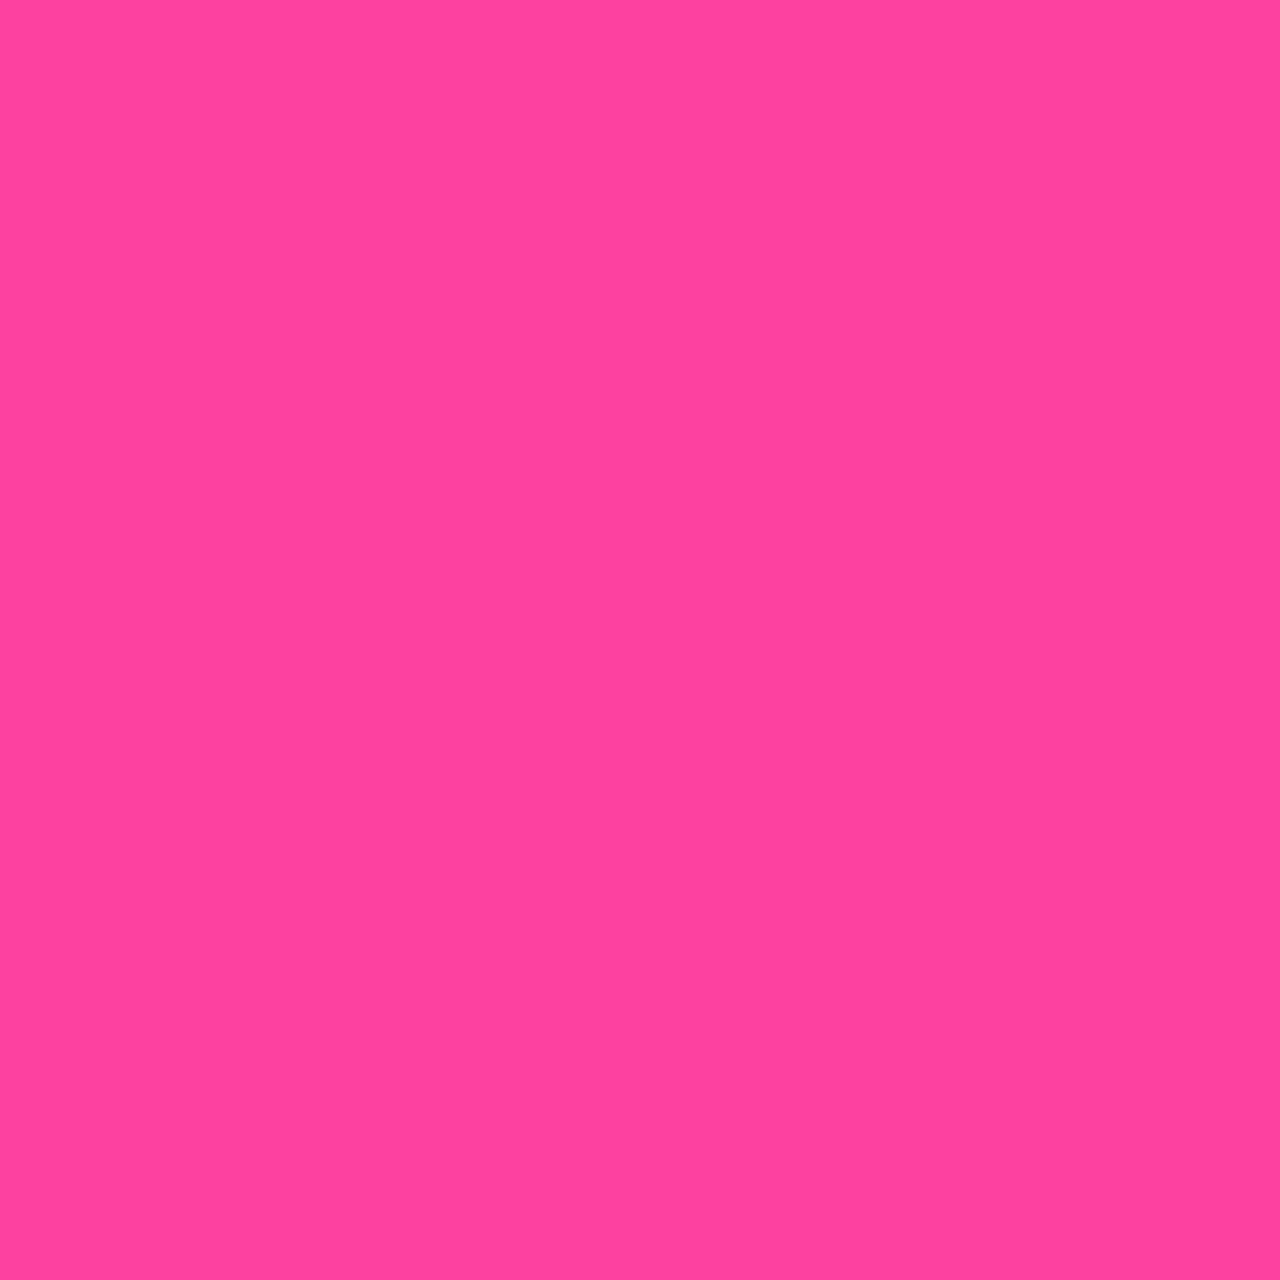 Rosco Calcolor Sheet #4860: 60 Pink, Gels